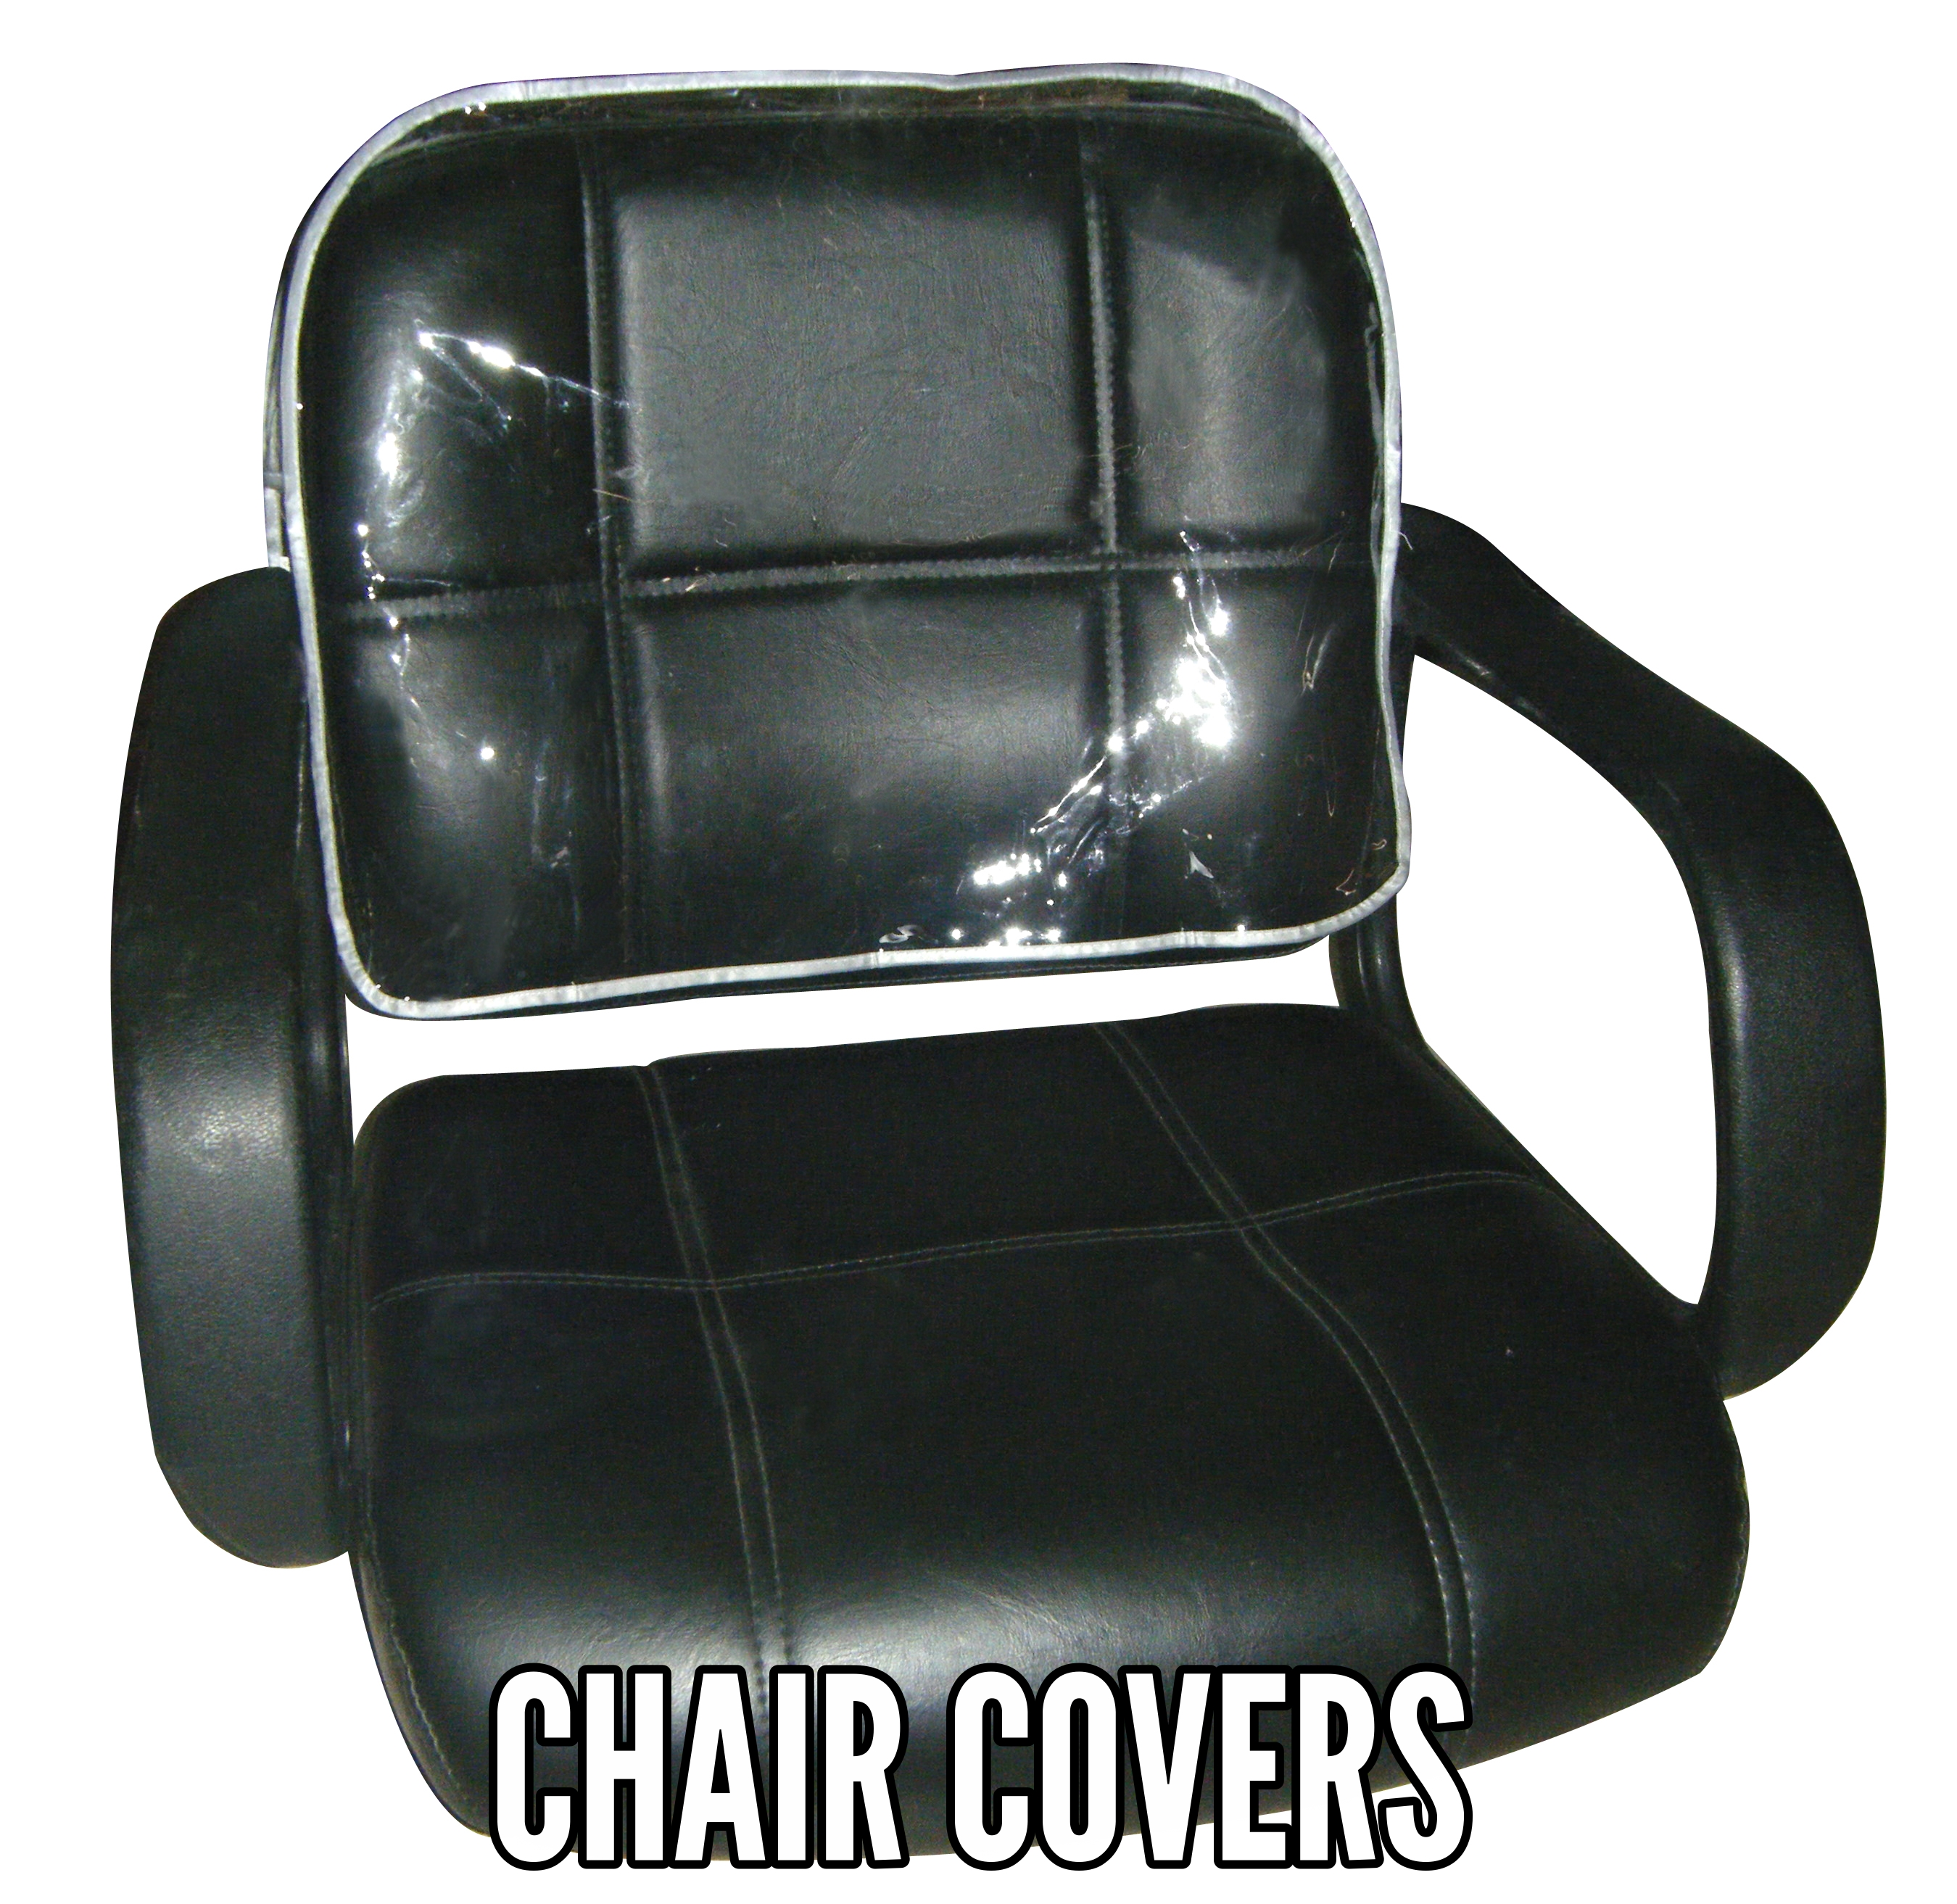 Salon Chair Covers Clear Styling Chair Cover Protectors For Hair Salon And